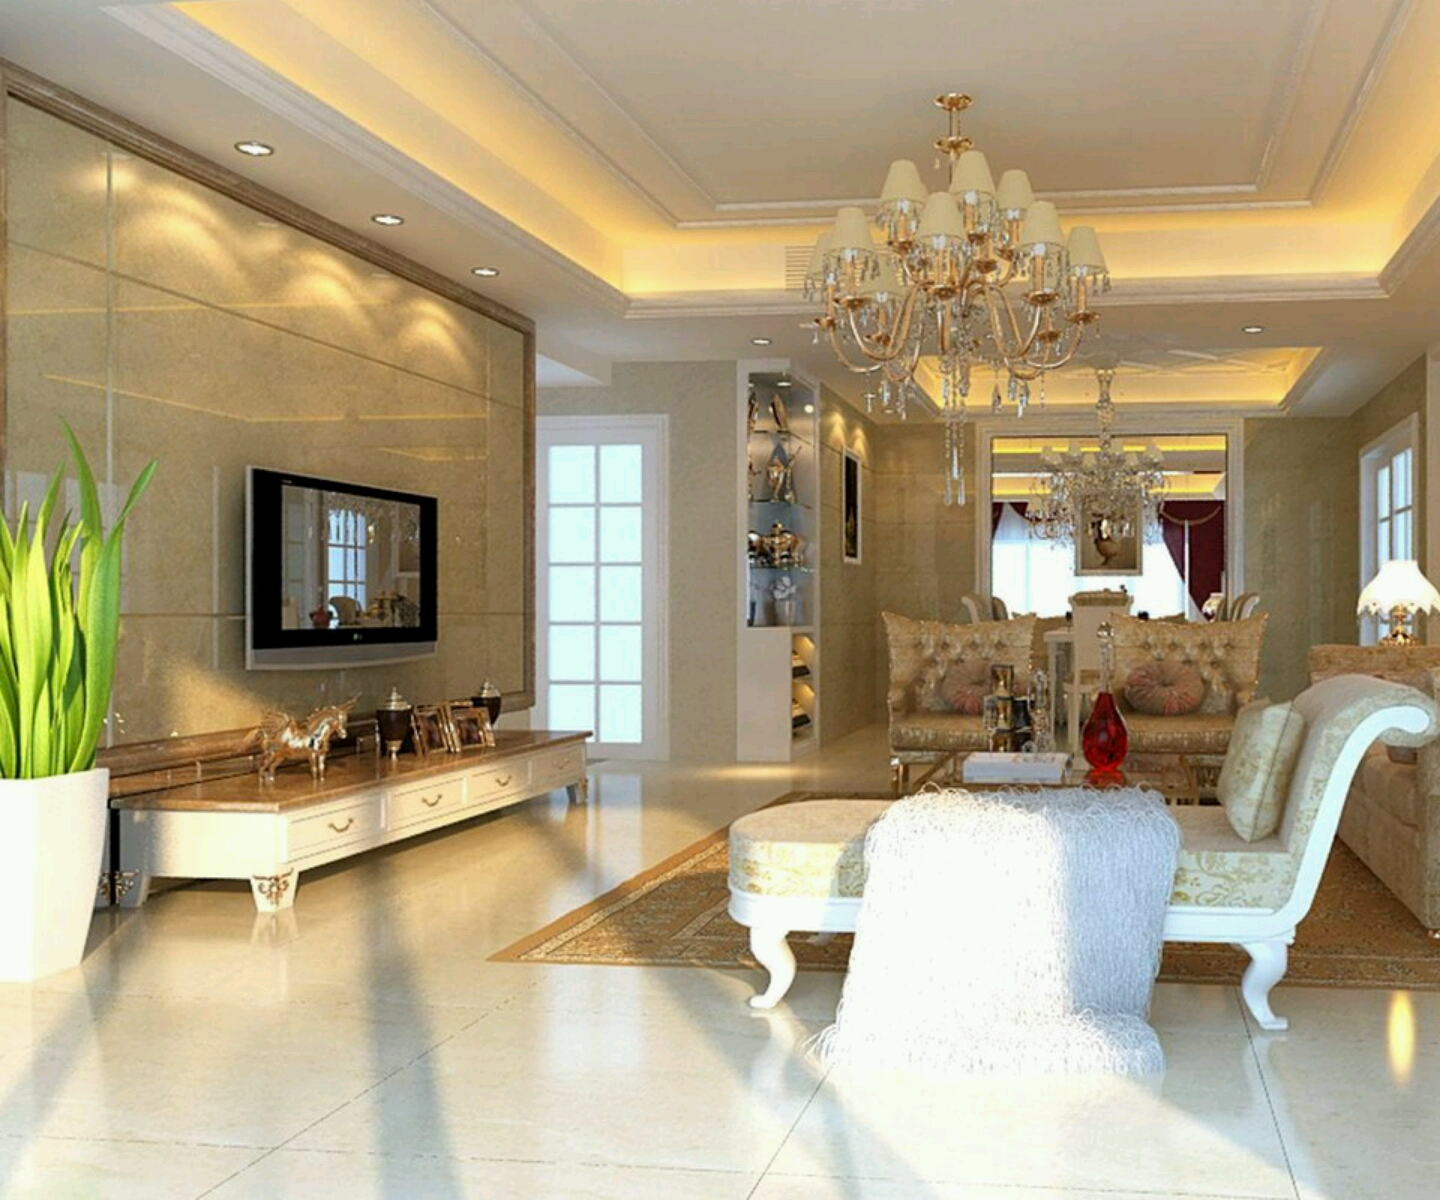 New home designs latest luxury homes interior decoration for New room decoration ideas